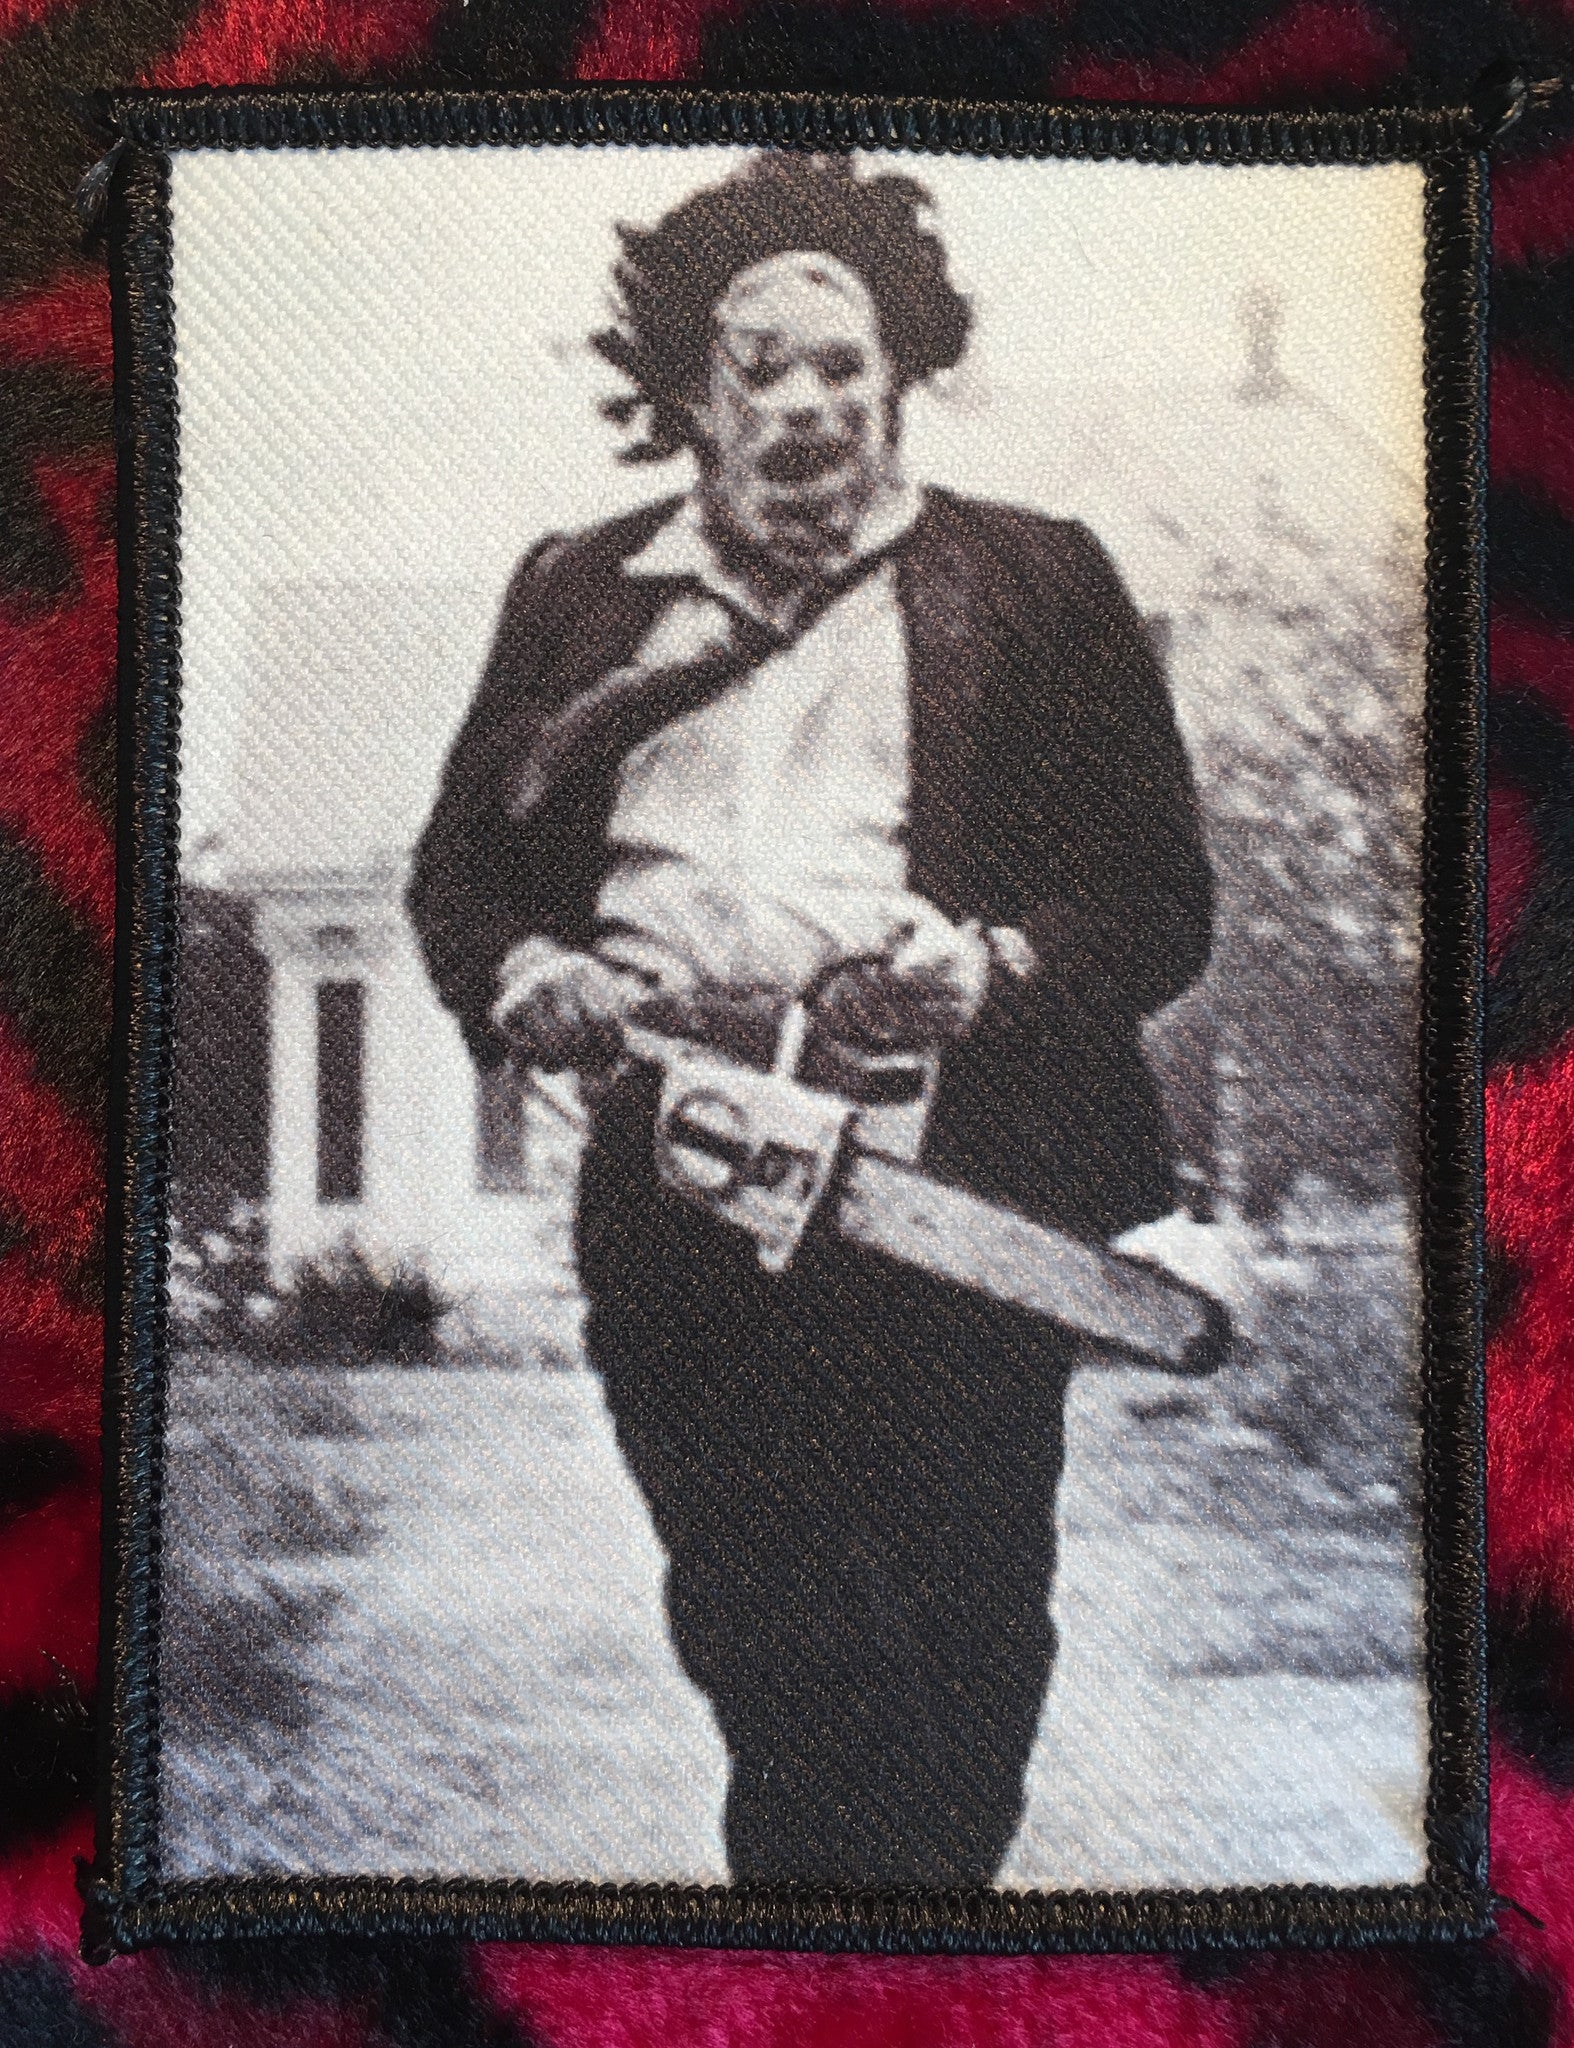 Texas Chainsaw Massacre Leatherface Patch